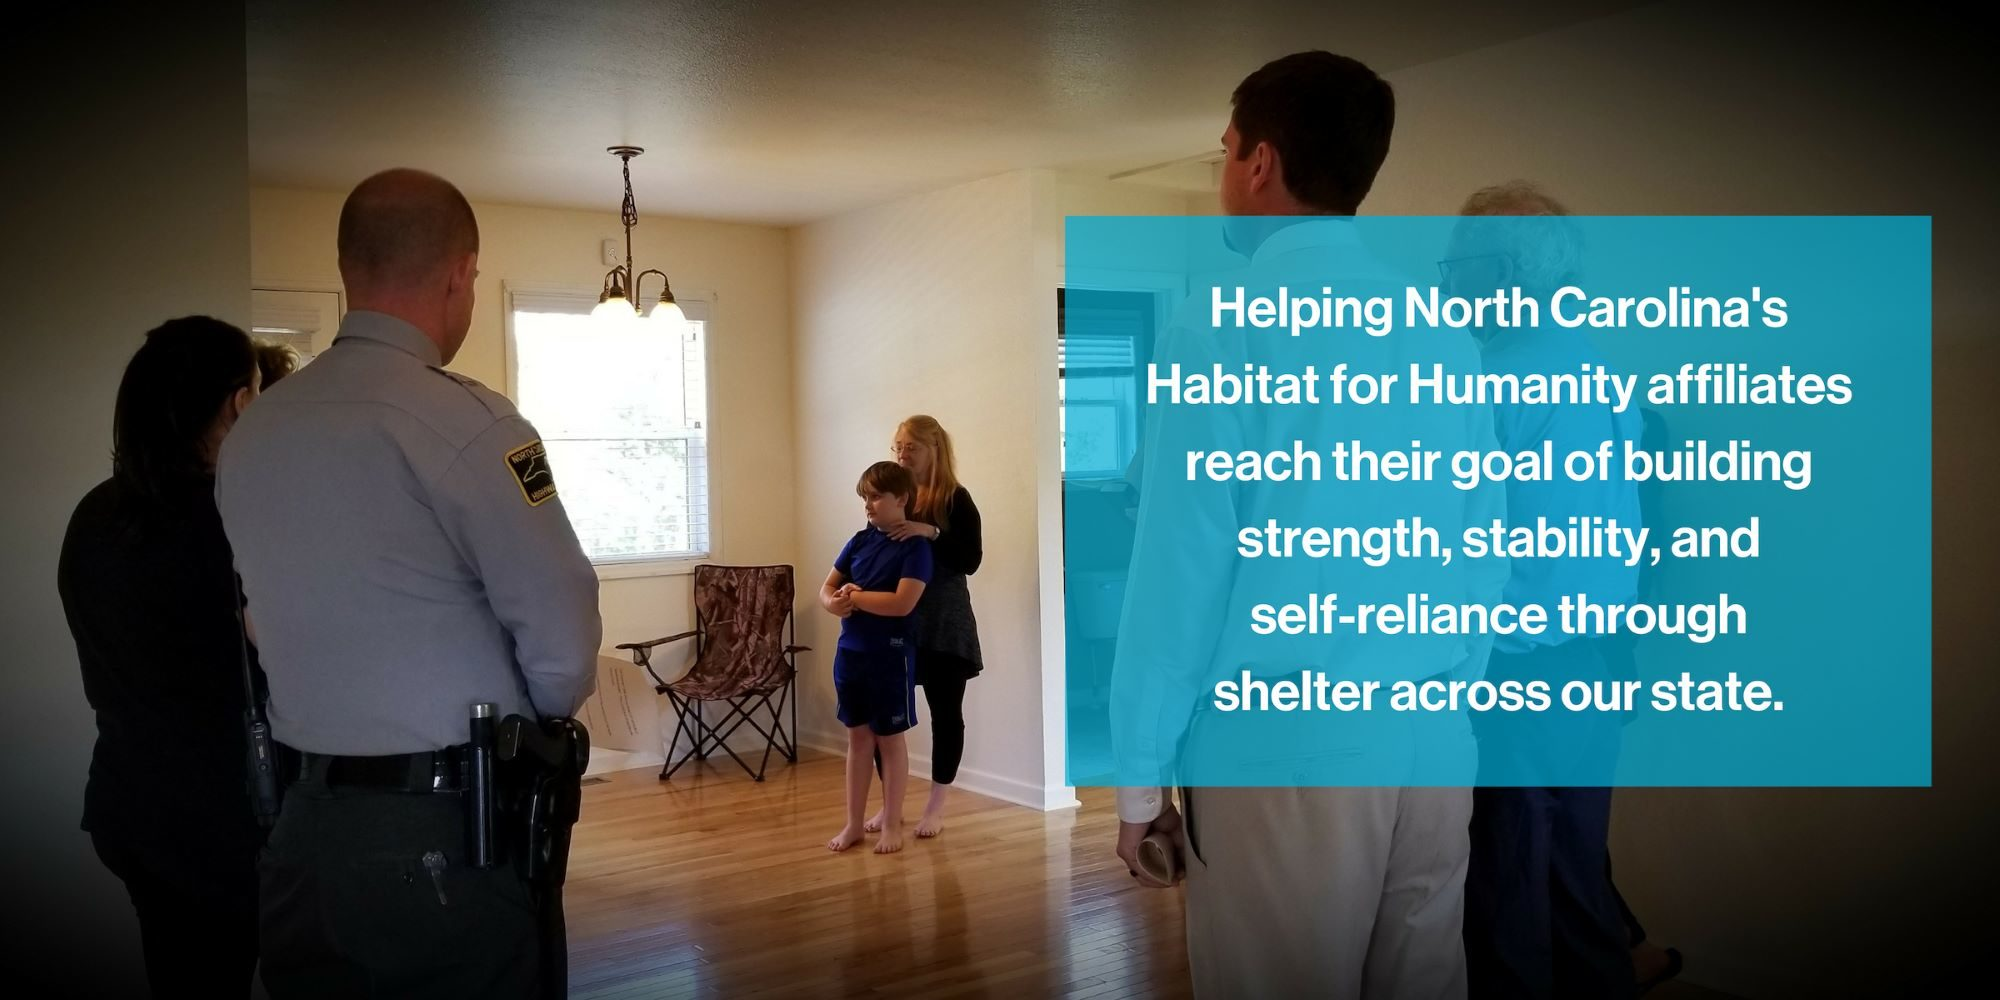 Habitat for Humanity of North Carolina